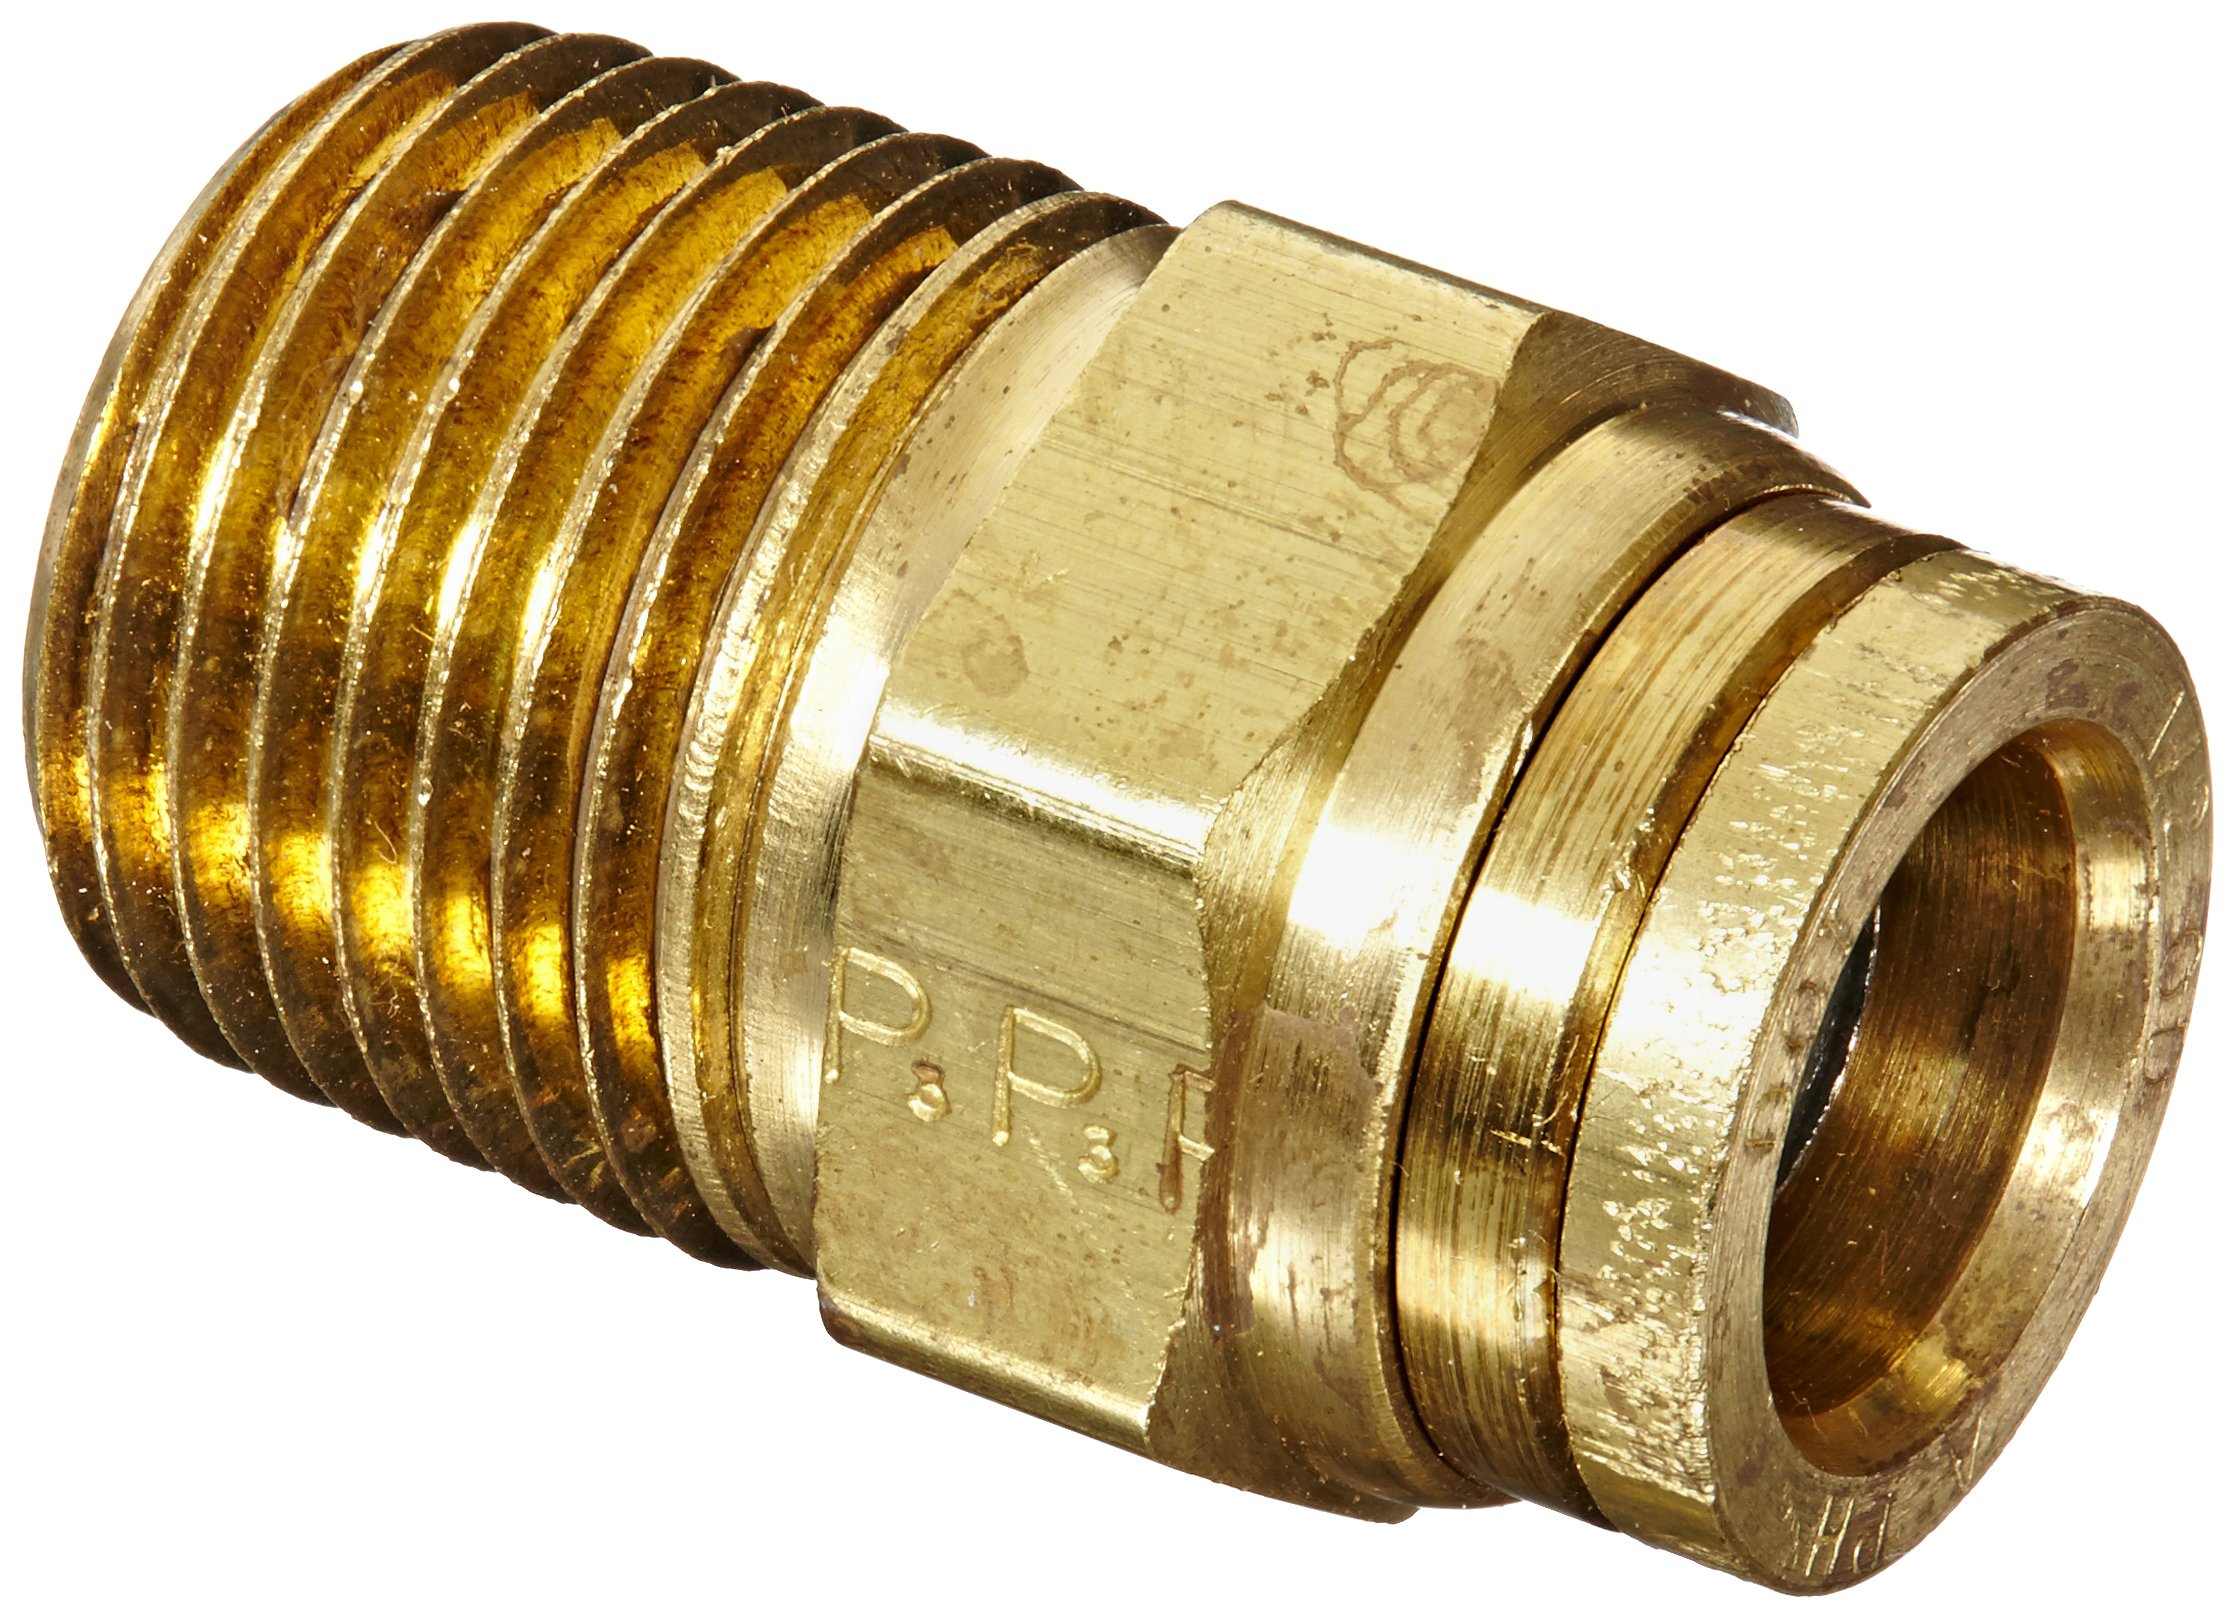 Legris 3115 62 22DOT Nylon & Nickel-Plated Brass Push-To-Connect Fitting, Complies with DOT, Inline Connector, 1/2'' Tube OD x 1/2'' NPT Male